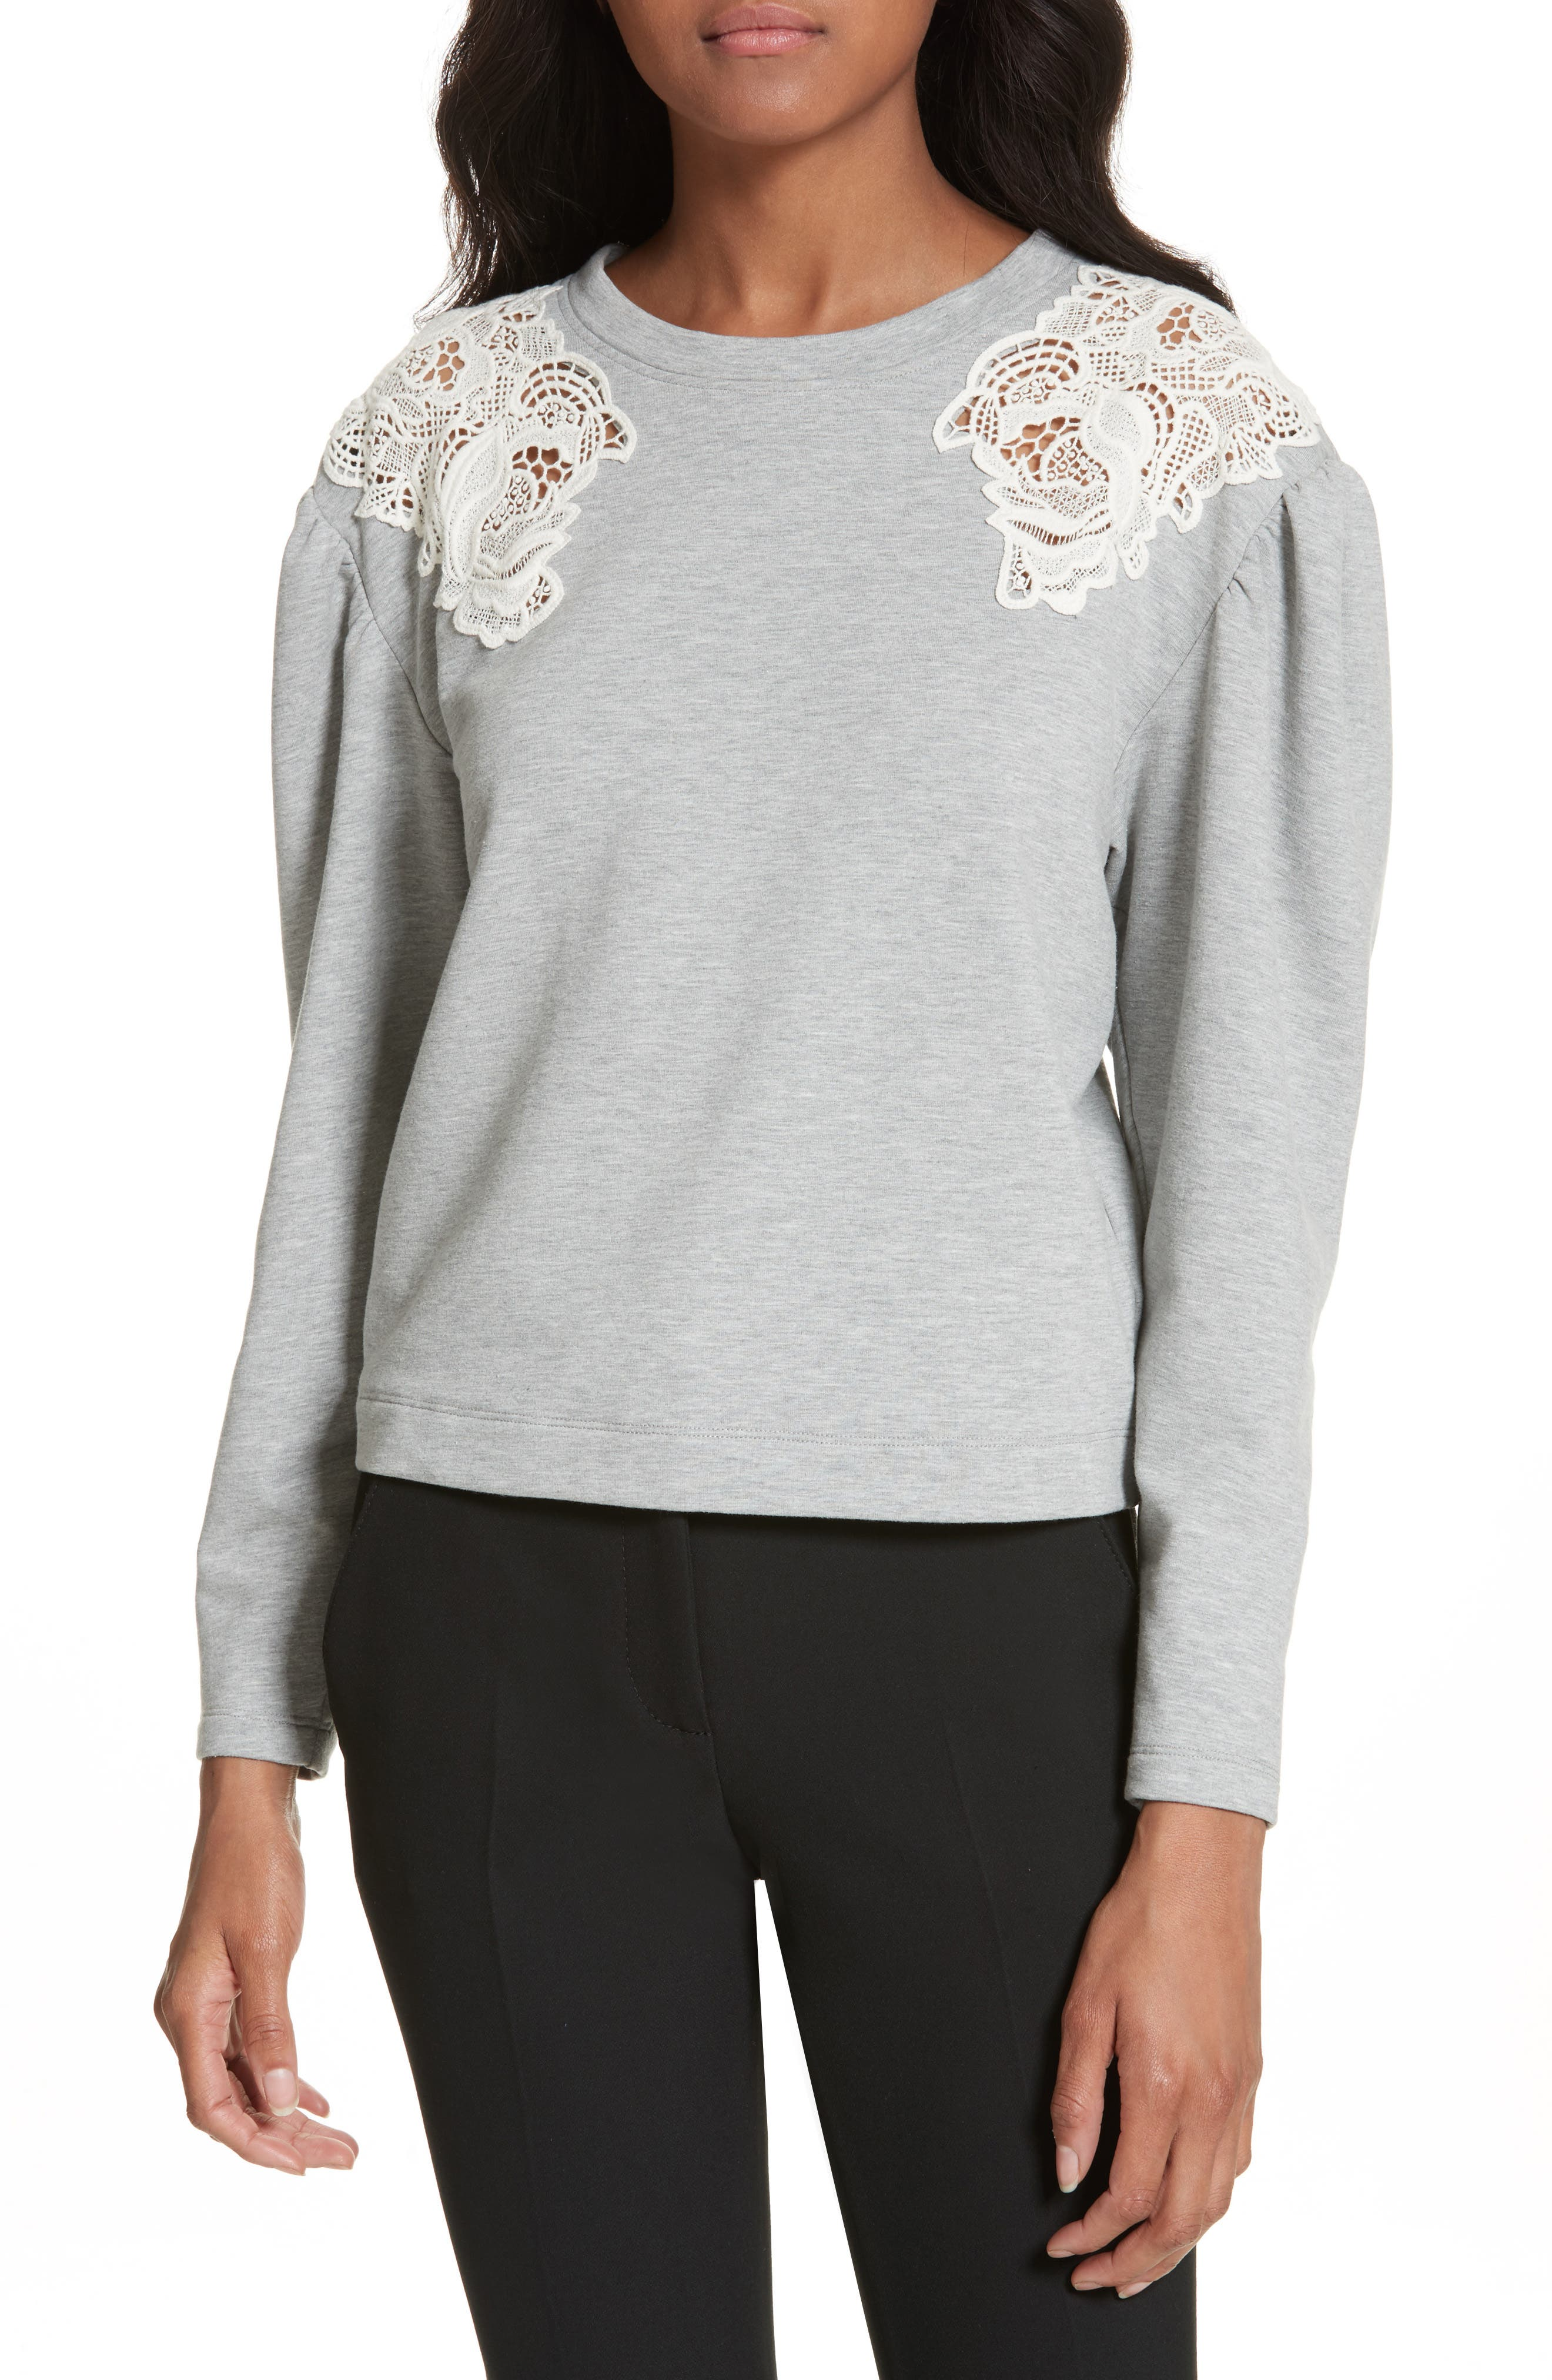 Alternate Image 1 Selected - Rebecca Taylor Lace Inset Sweatshirt